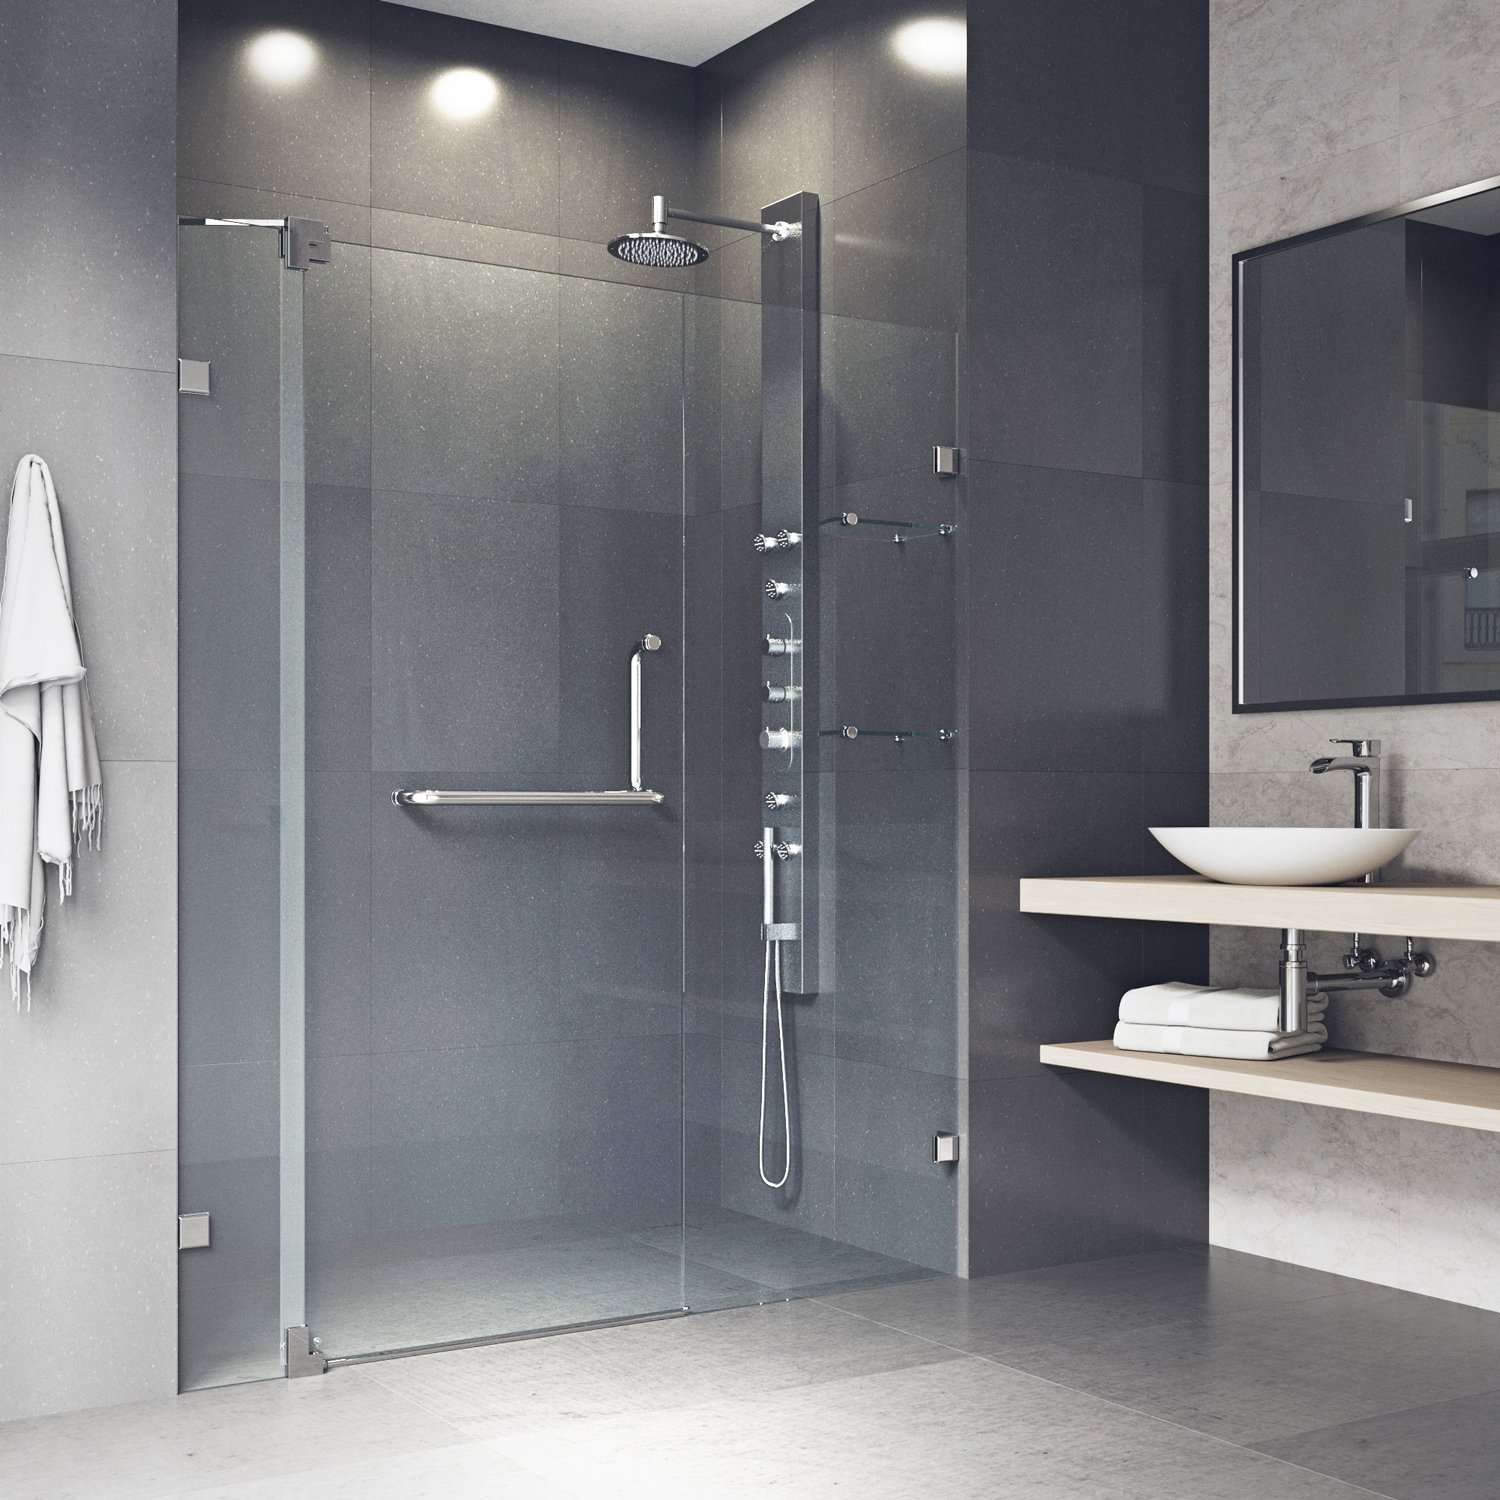 Vigo vg6042bncl60 60 inch frameless shower door with 3 8 inch clear glass and brushed nickel tools home improvement amazon canada